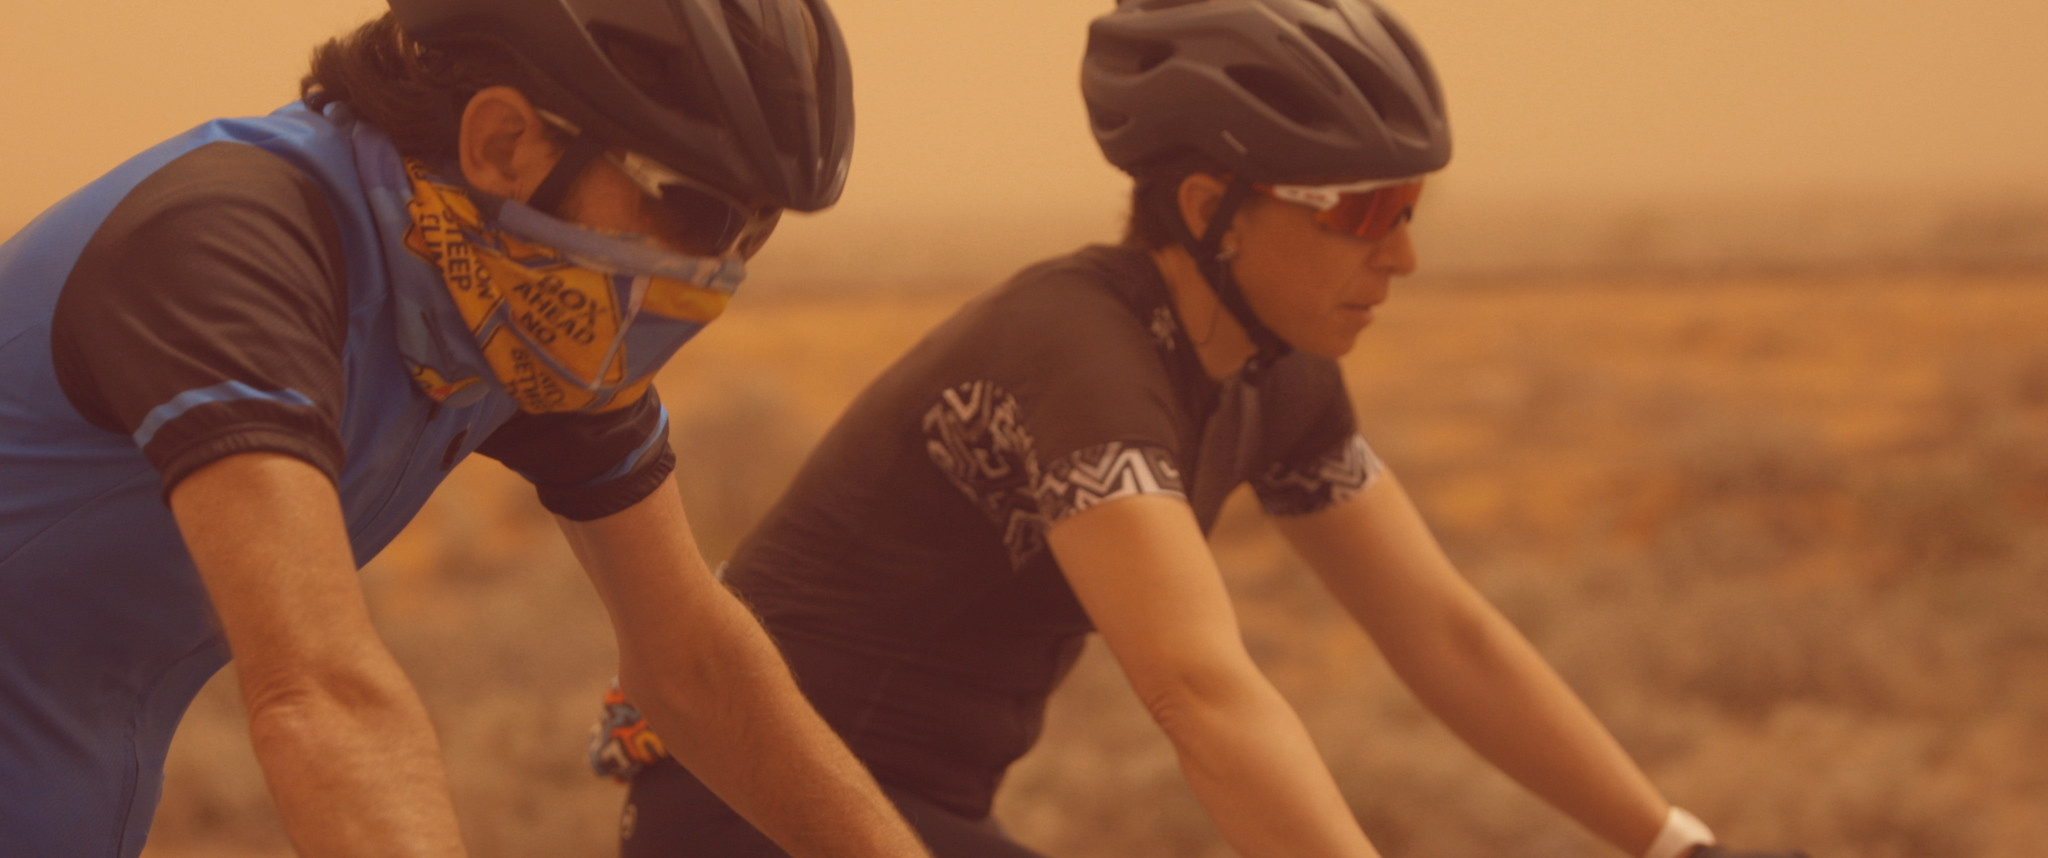 Riding through the Dust storm II.jpg